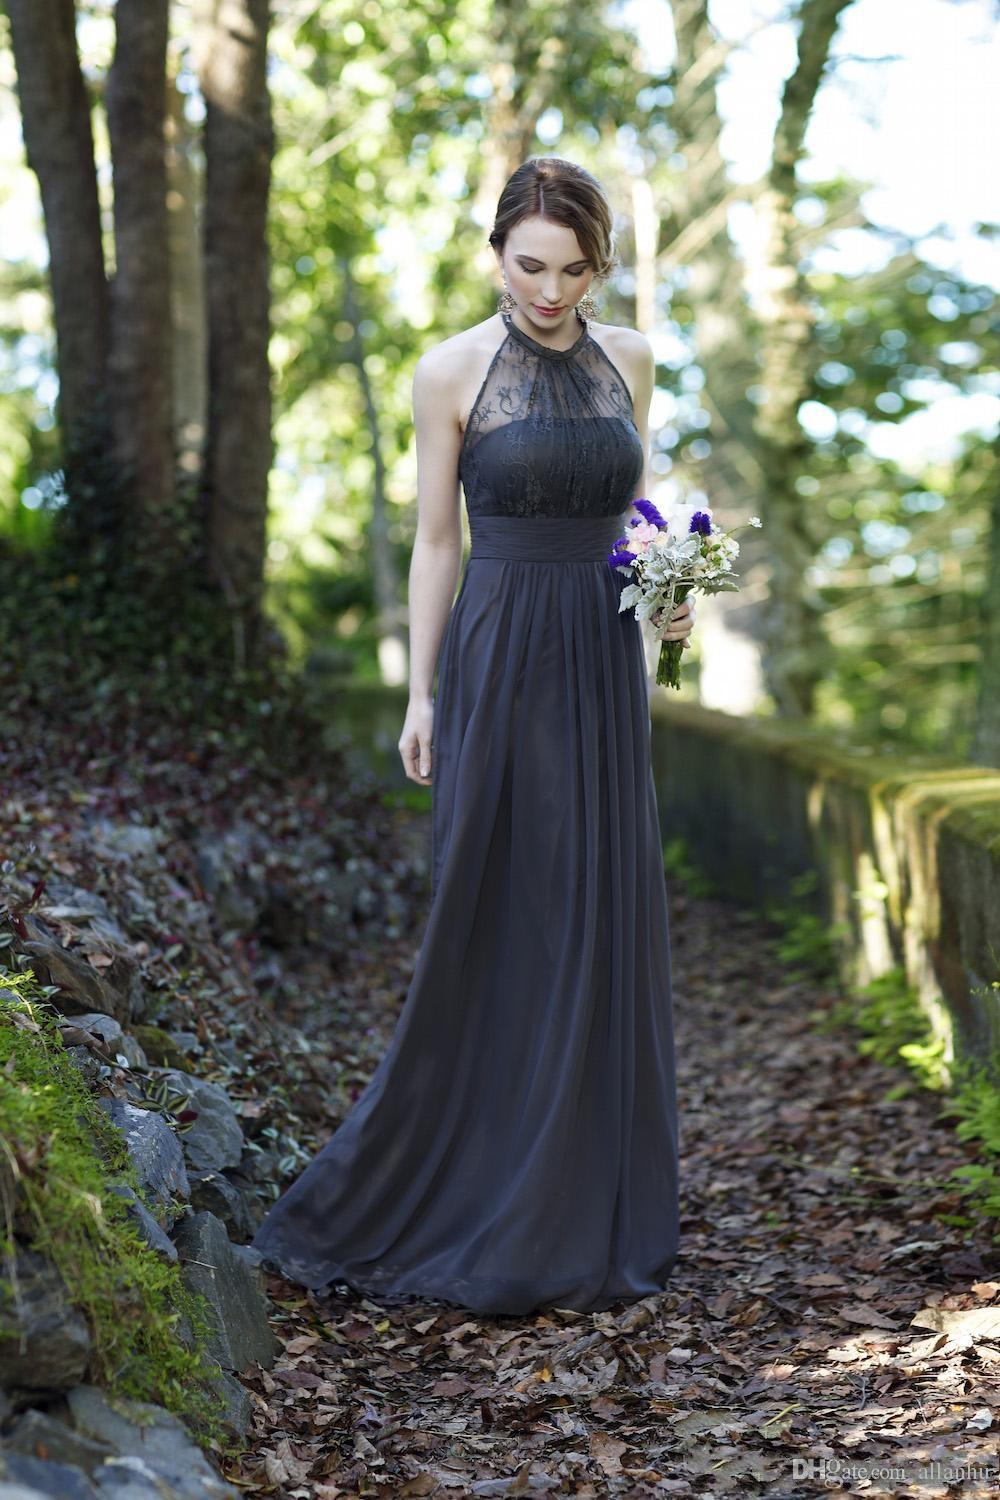 bc632636fc0 2016 Cheap Grey Pink Navy Blue Lace Bridesmaid Dresses Halter Chiffon Long  Formal Maid Of Honor Wedding Party Gowns BF3-in Bridesmaid Dresses from  Weddings ...